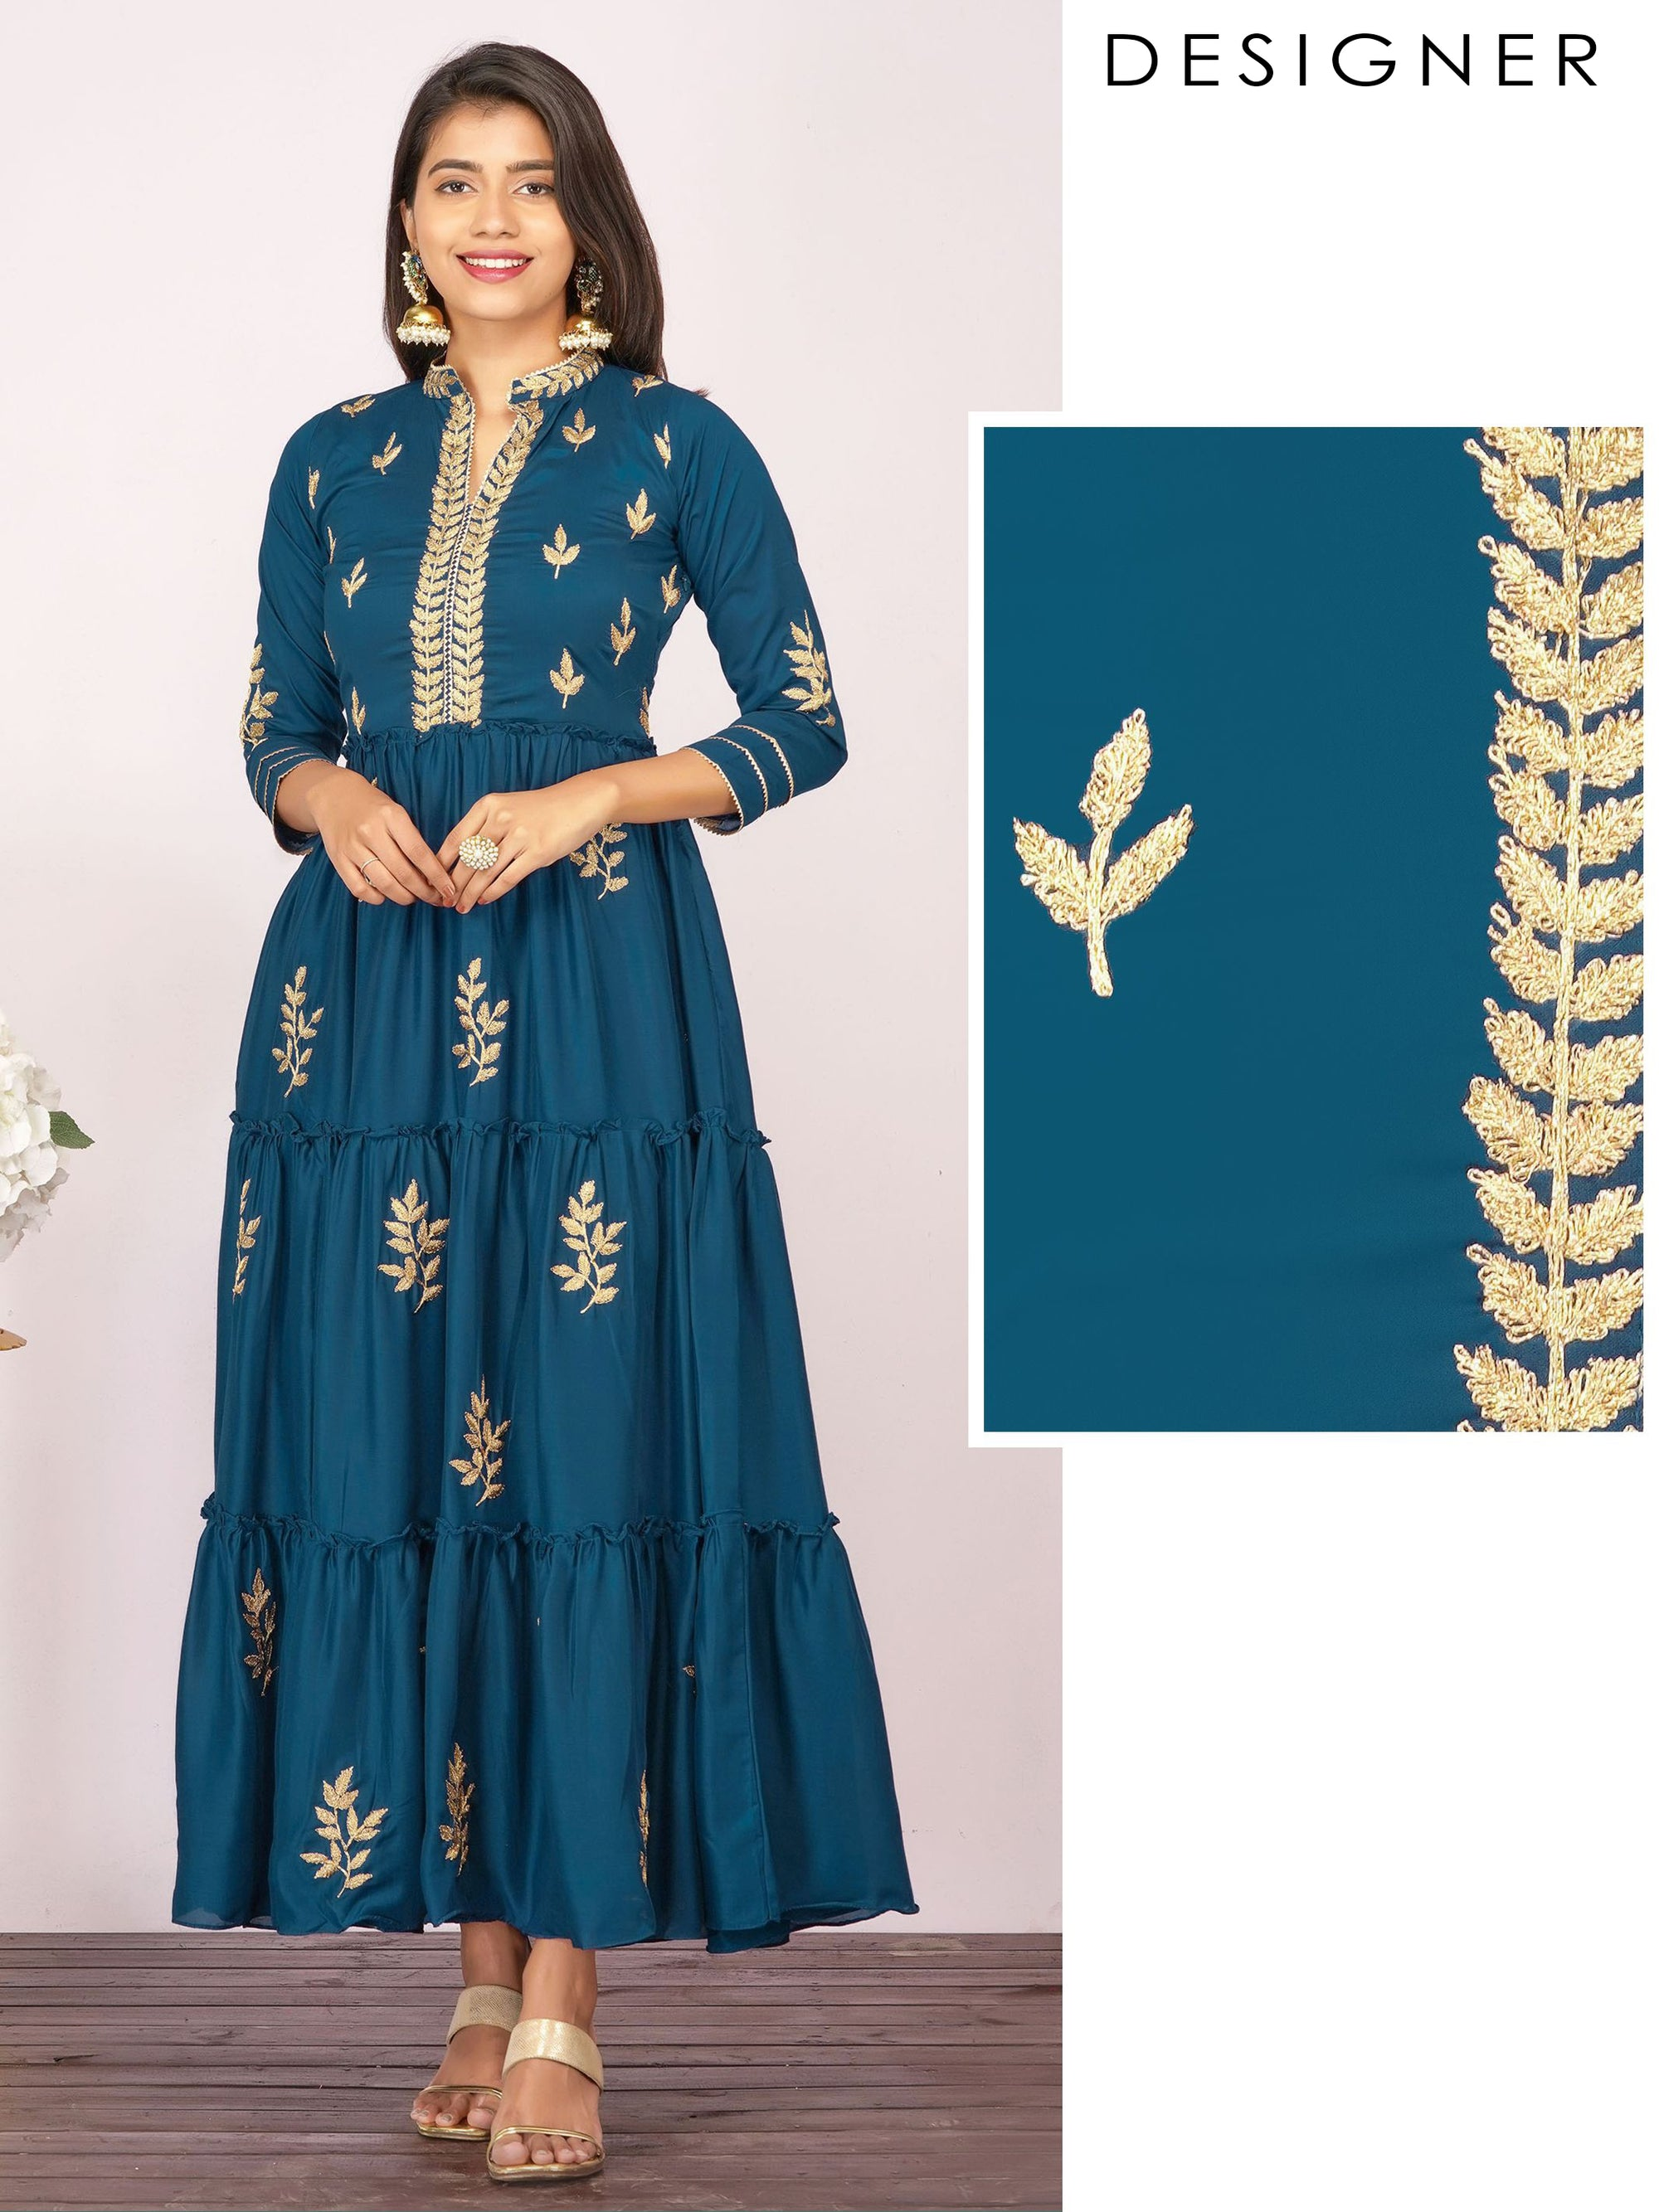 Zari Cord Embroidered & Tiered Temple Gota Designer Maxi – Teal Blue